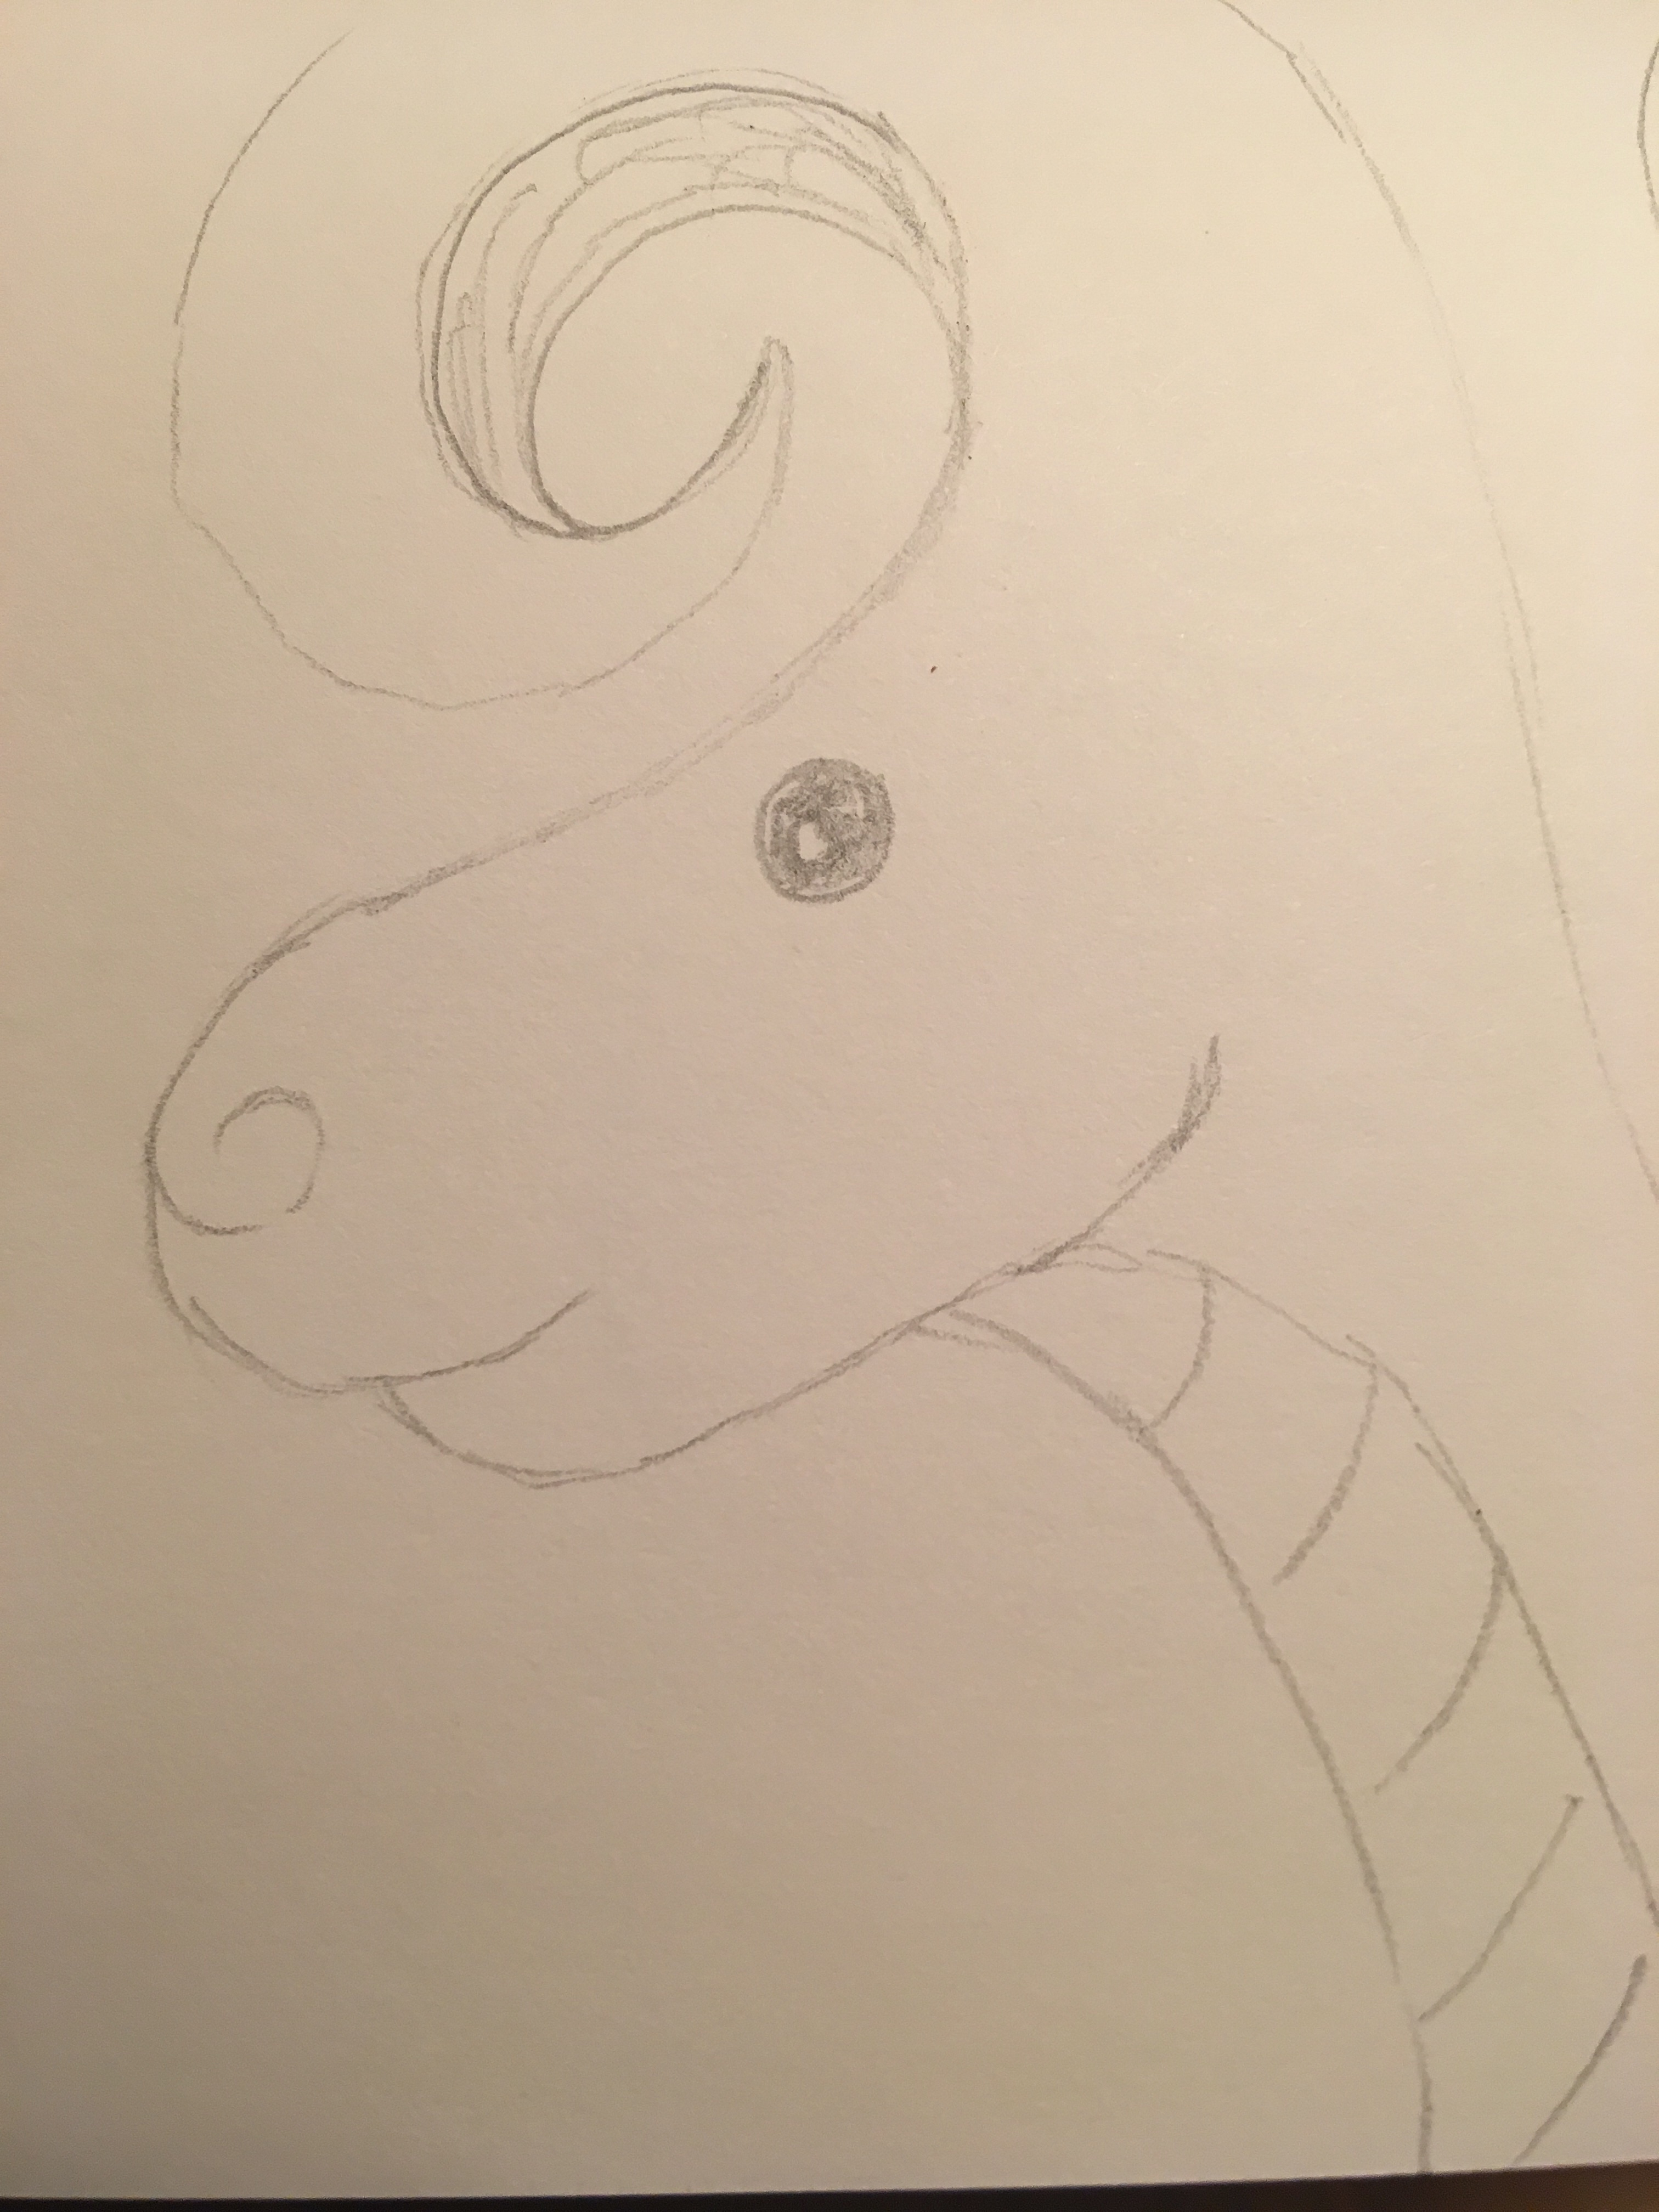 Dragon with spiral horn